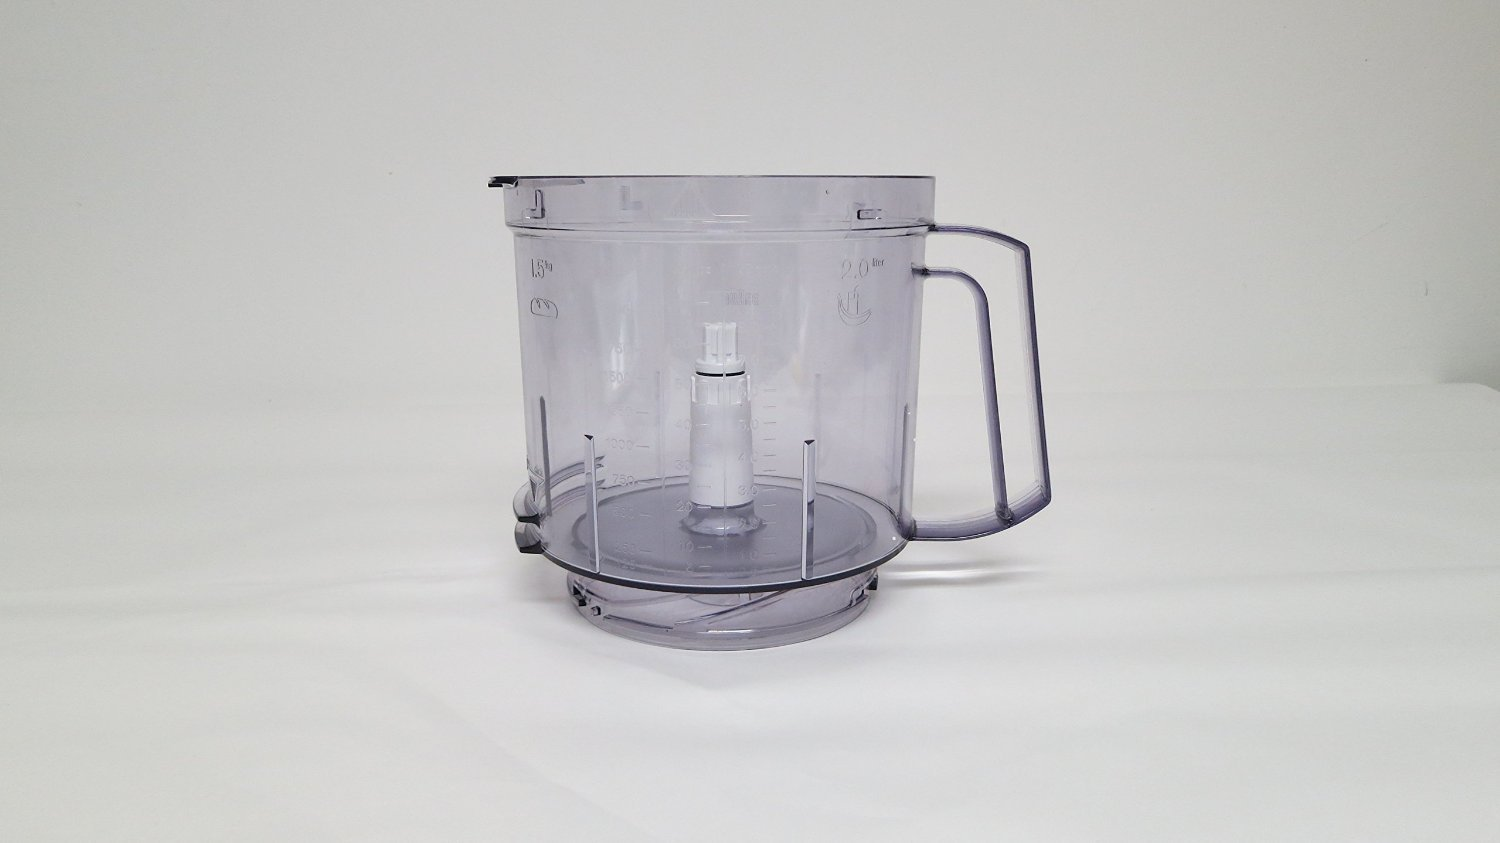 Braun 7051-144 70 oz Food Processor Work Bowl, 2000ml